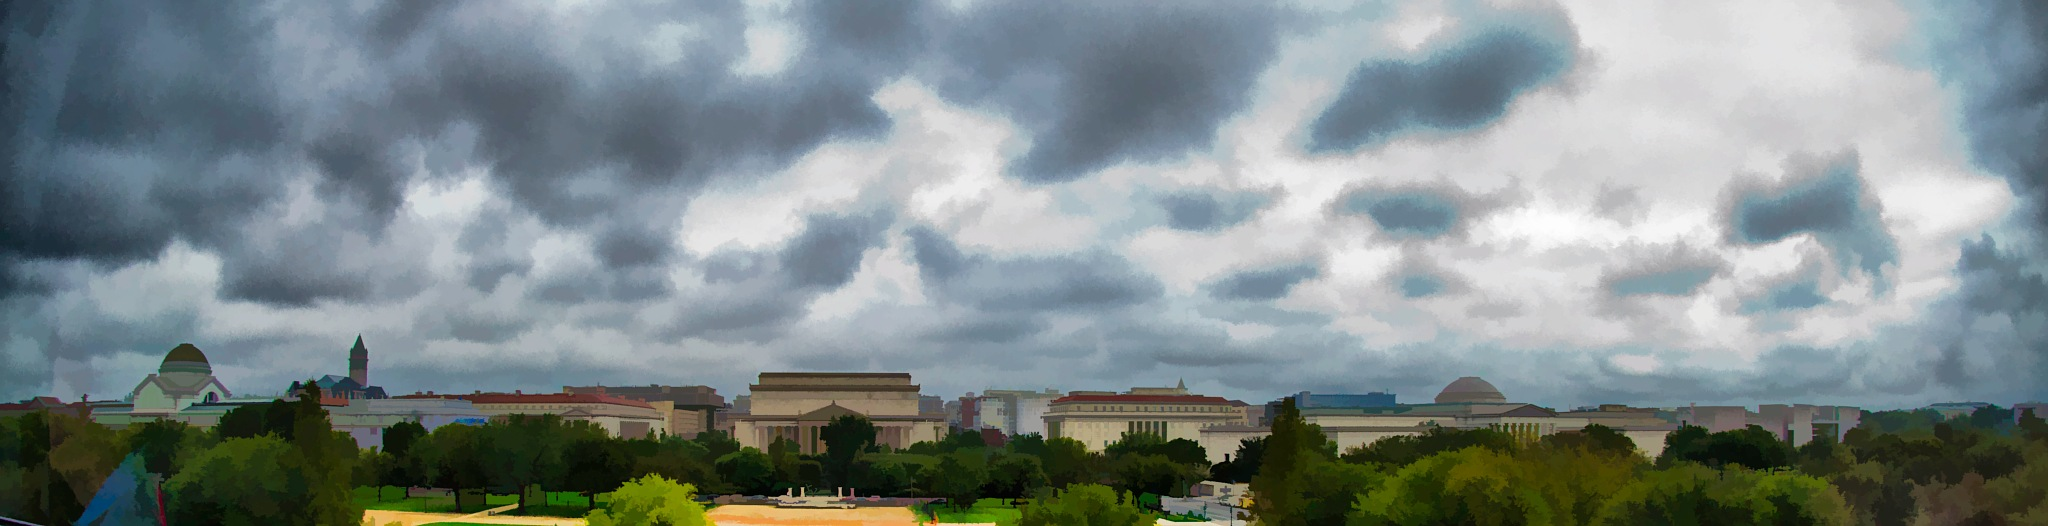 National Mall by JohnEllingson